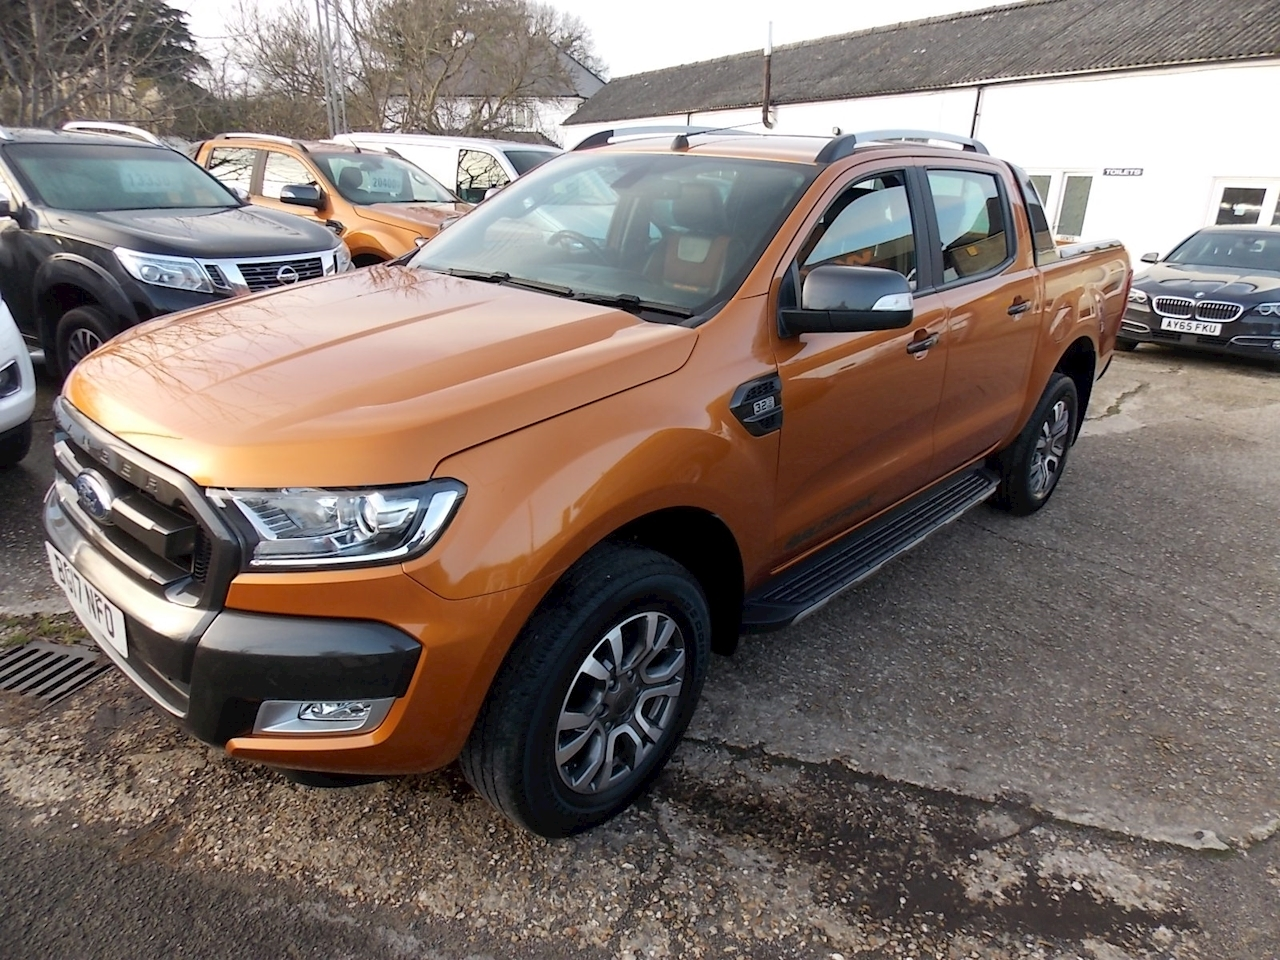 Ford Ranger Wildtrak 4X4 Dcb Tdci Pick-Up 3.2 Automatic Diesel